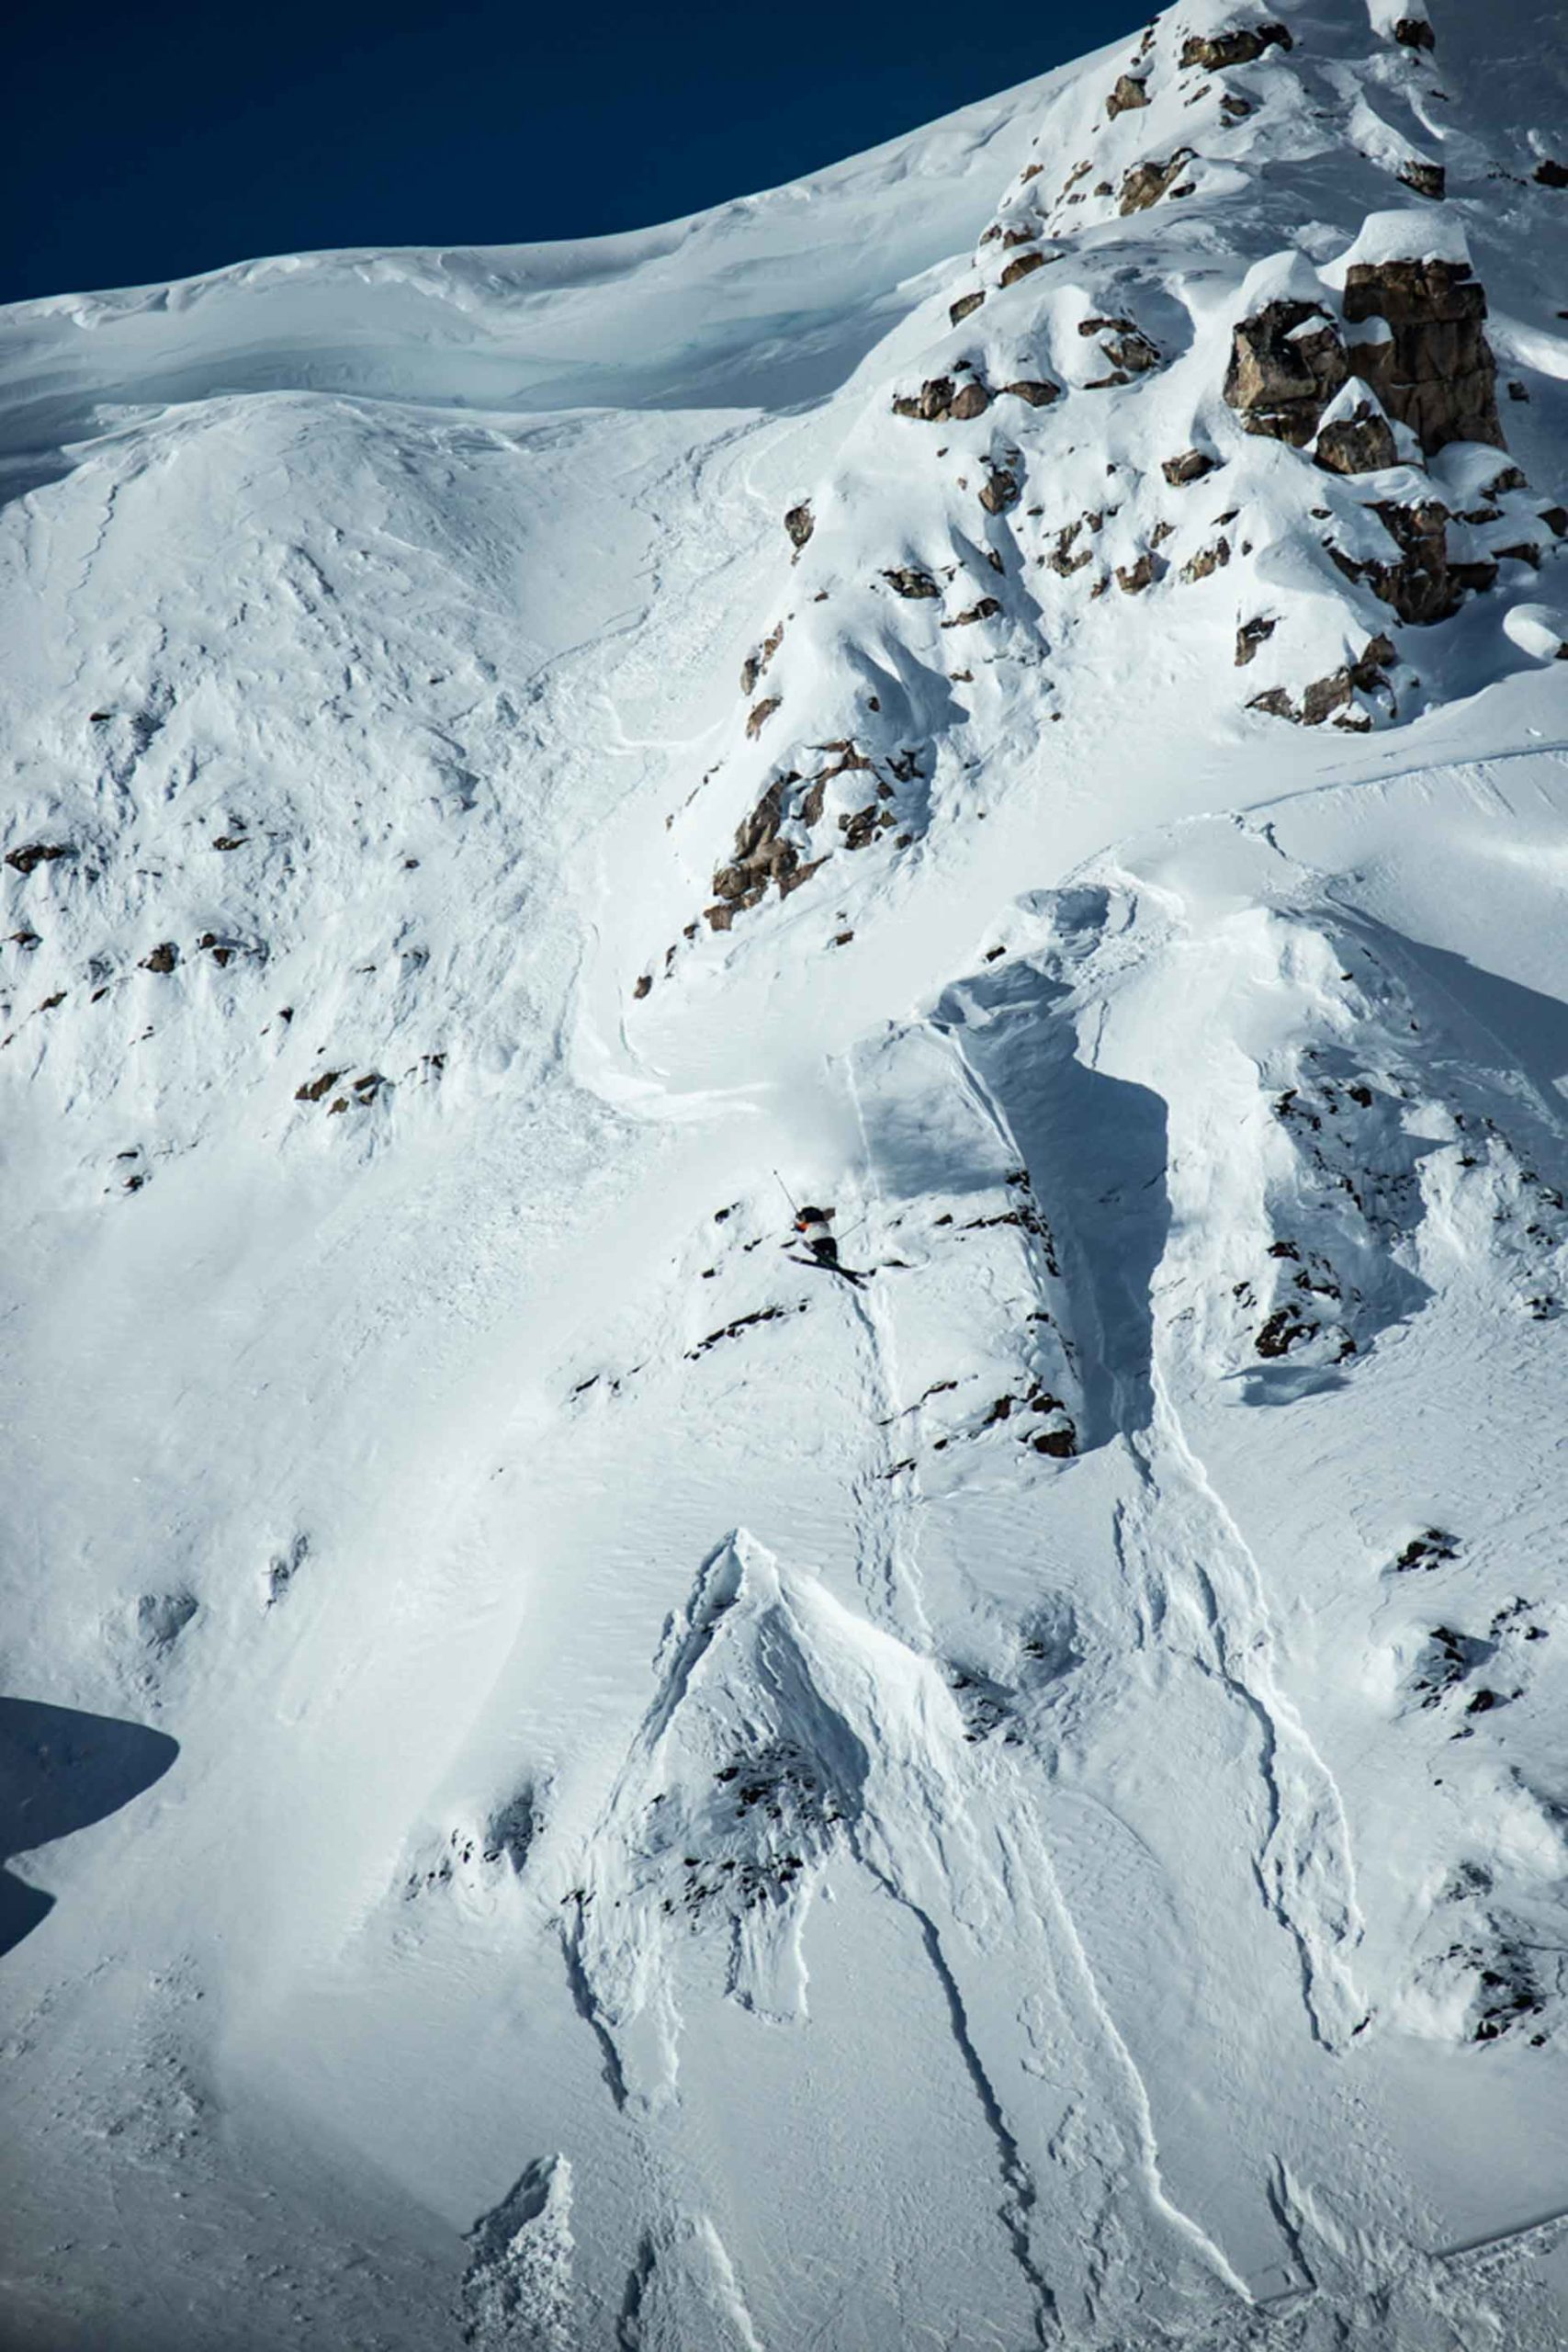 Freeriding at FWT19 by Dom Daher